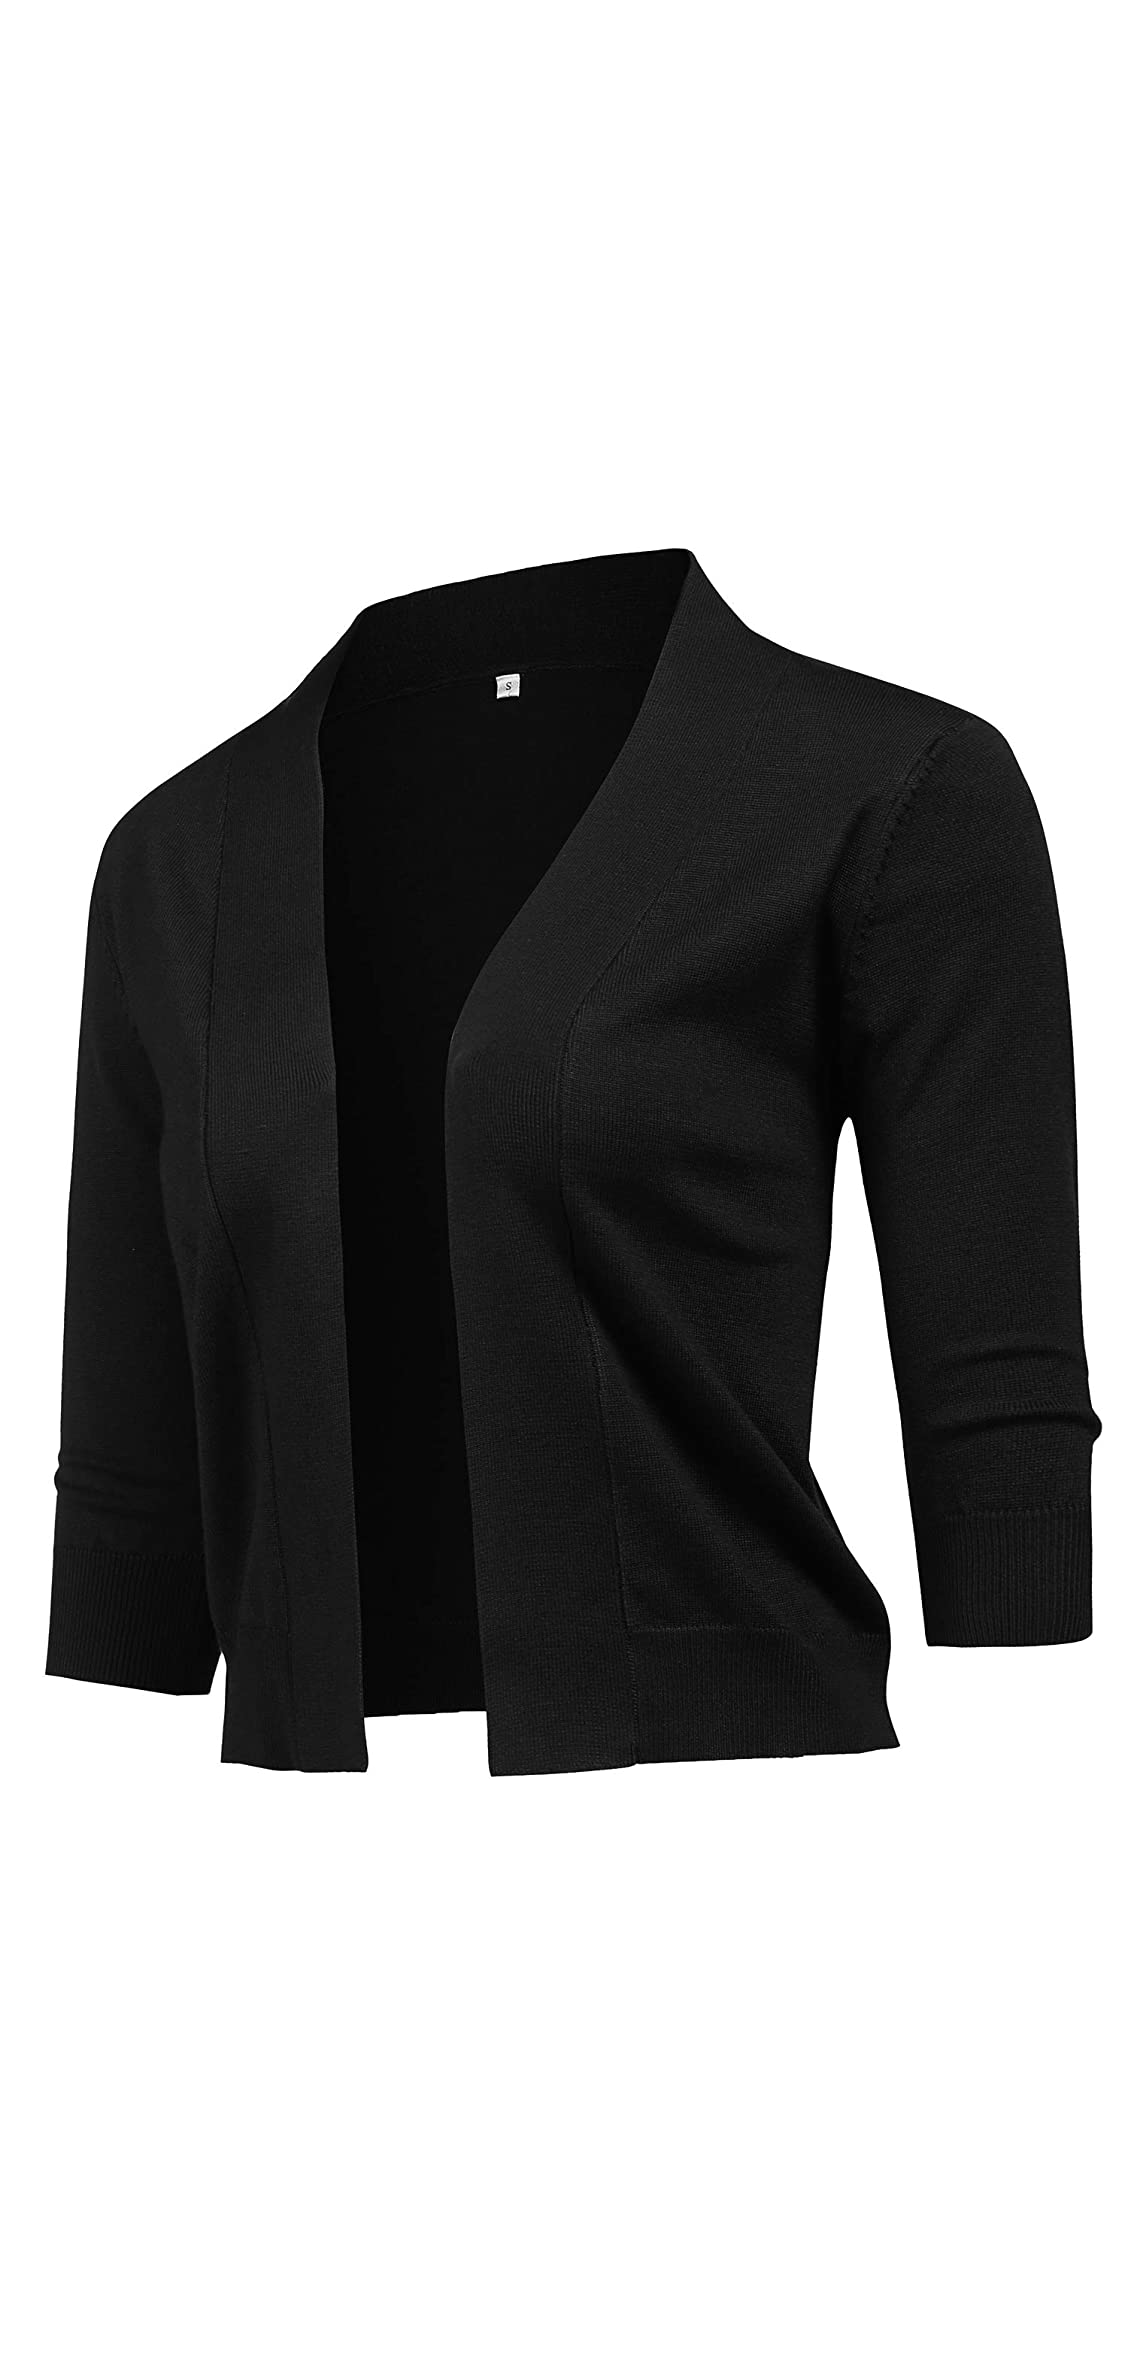 Women's Classic / Sleeve Open Front Cropped Cardigan Knit